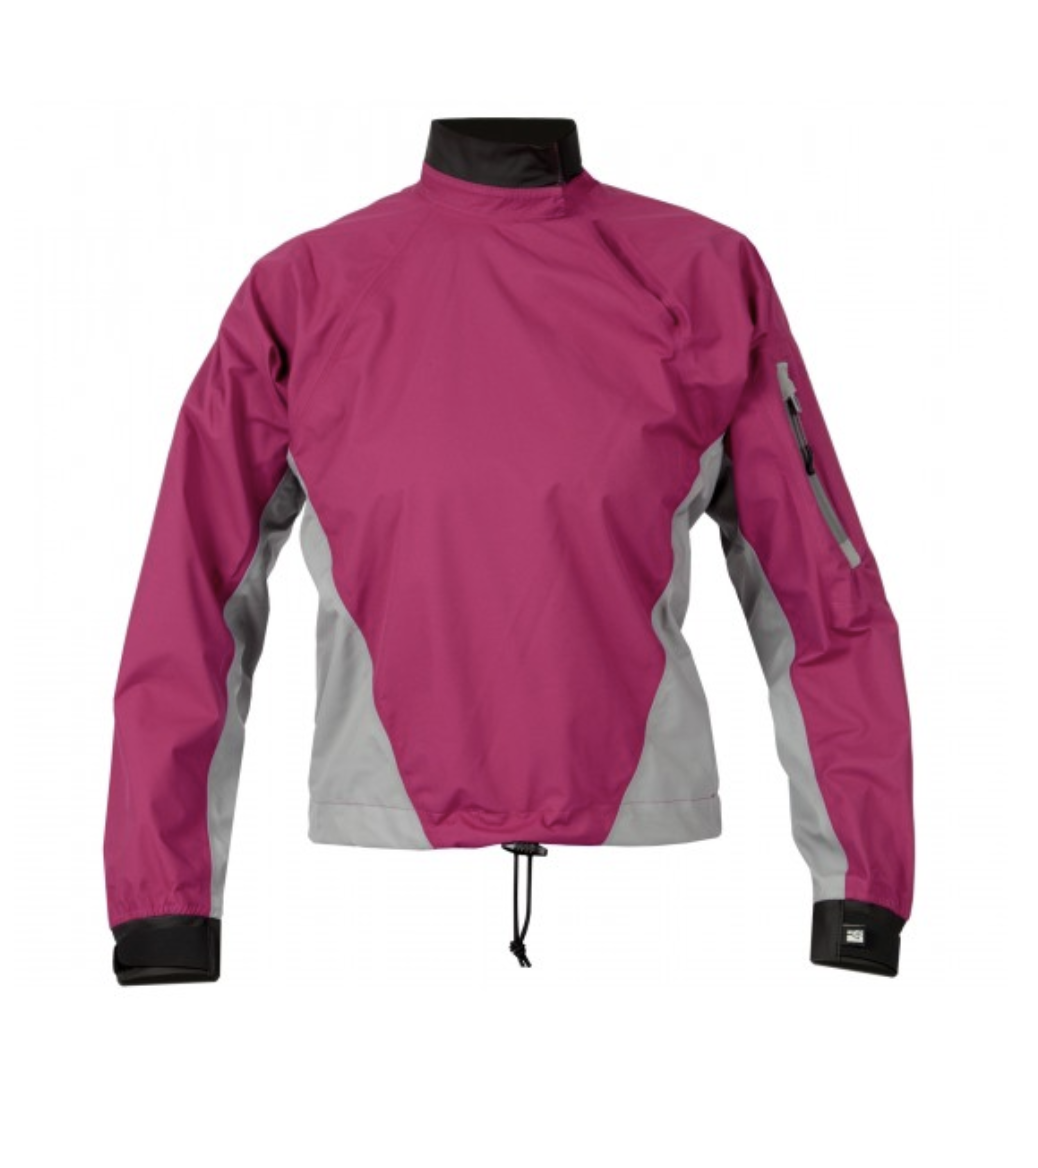 Technical Outerwear: GORE-TEX Paddling Jacket - Women by Kokatat - Image 3858